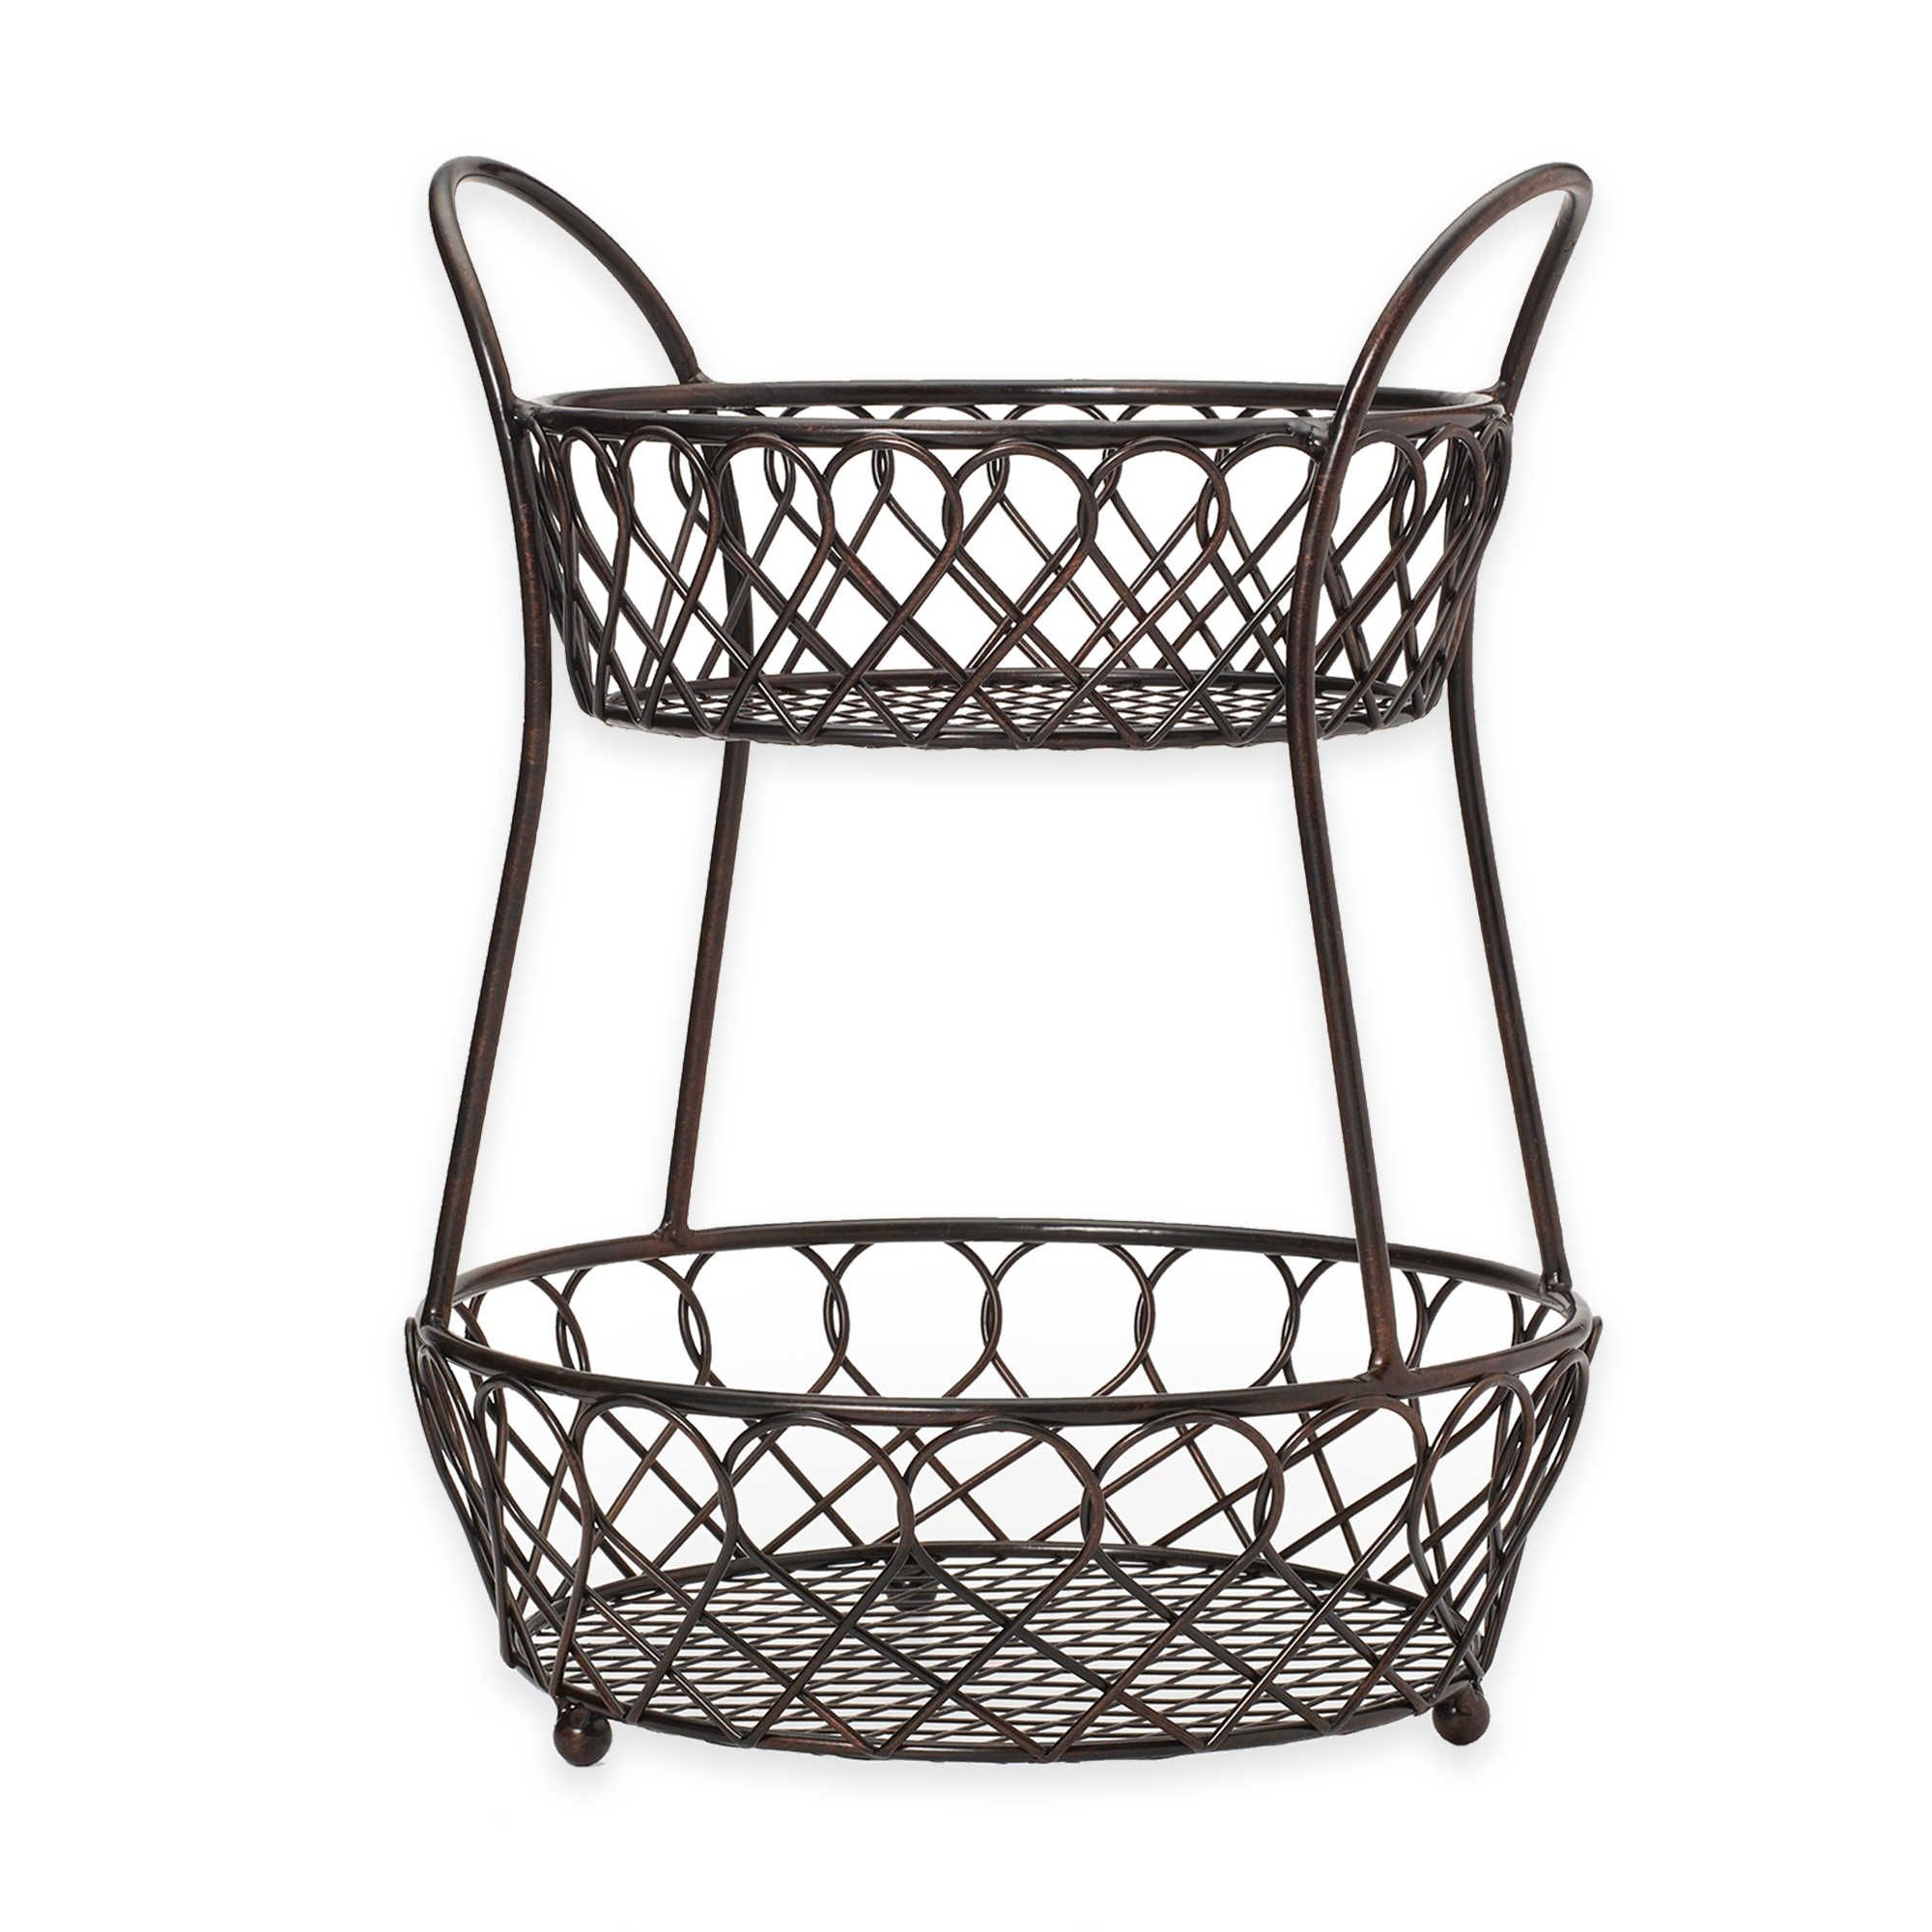 Fruit And Vegetables In The Lattice Countertop Basket From Gourmet Basics By Mikasa Wrought Iron With A Traditional Rope Twist Design